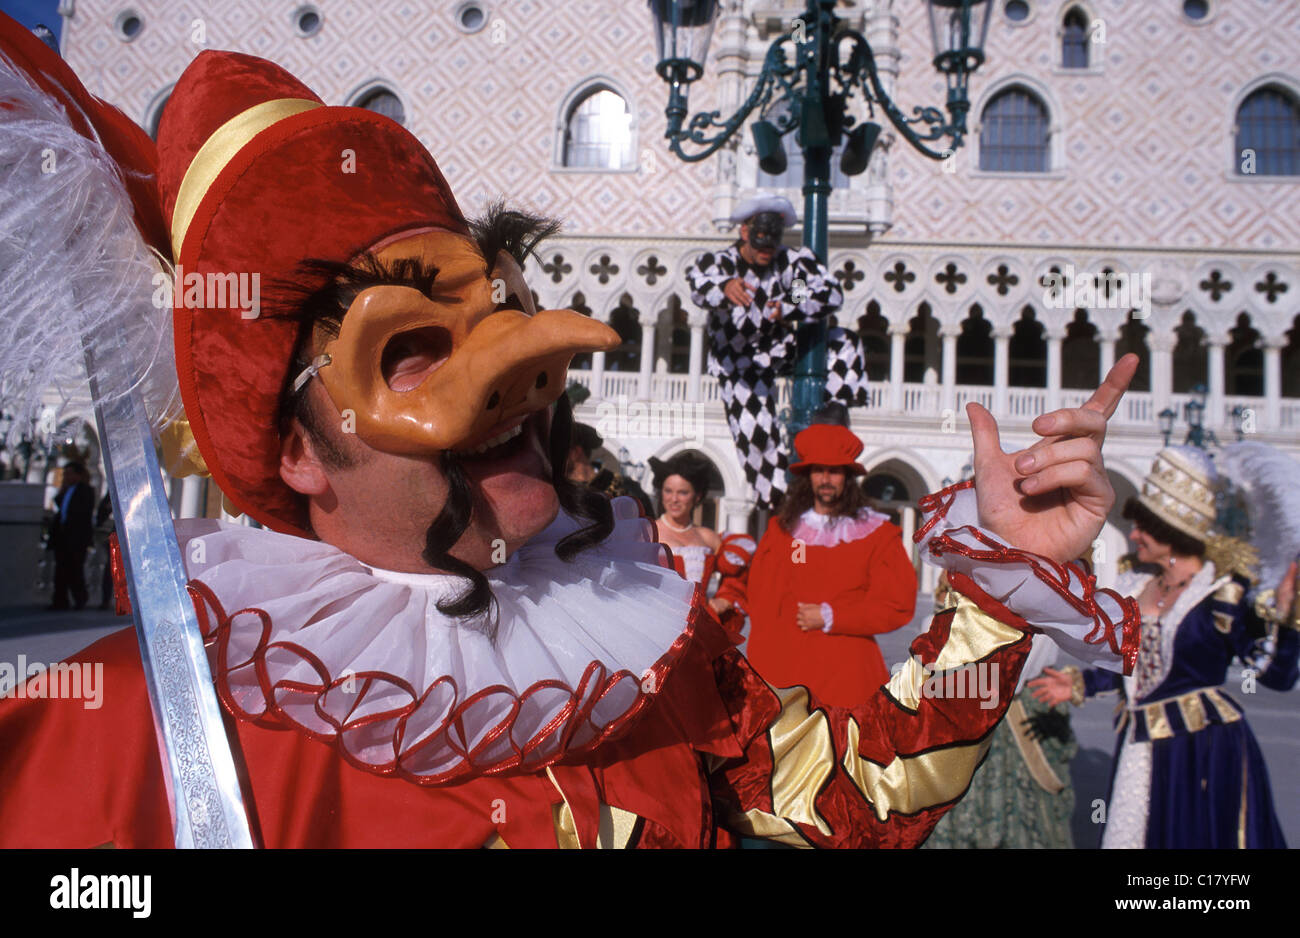 United States, Nevada, Las Vegas, opera's characters at the Venetian hotel - Stock Image